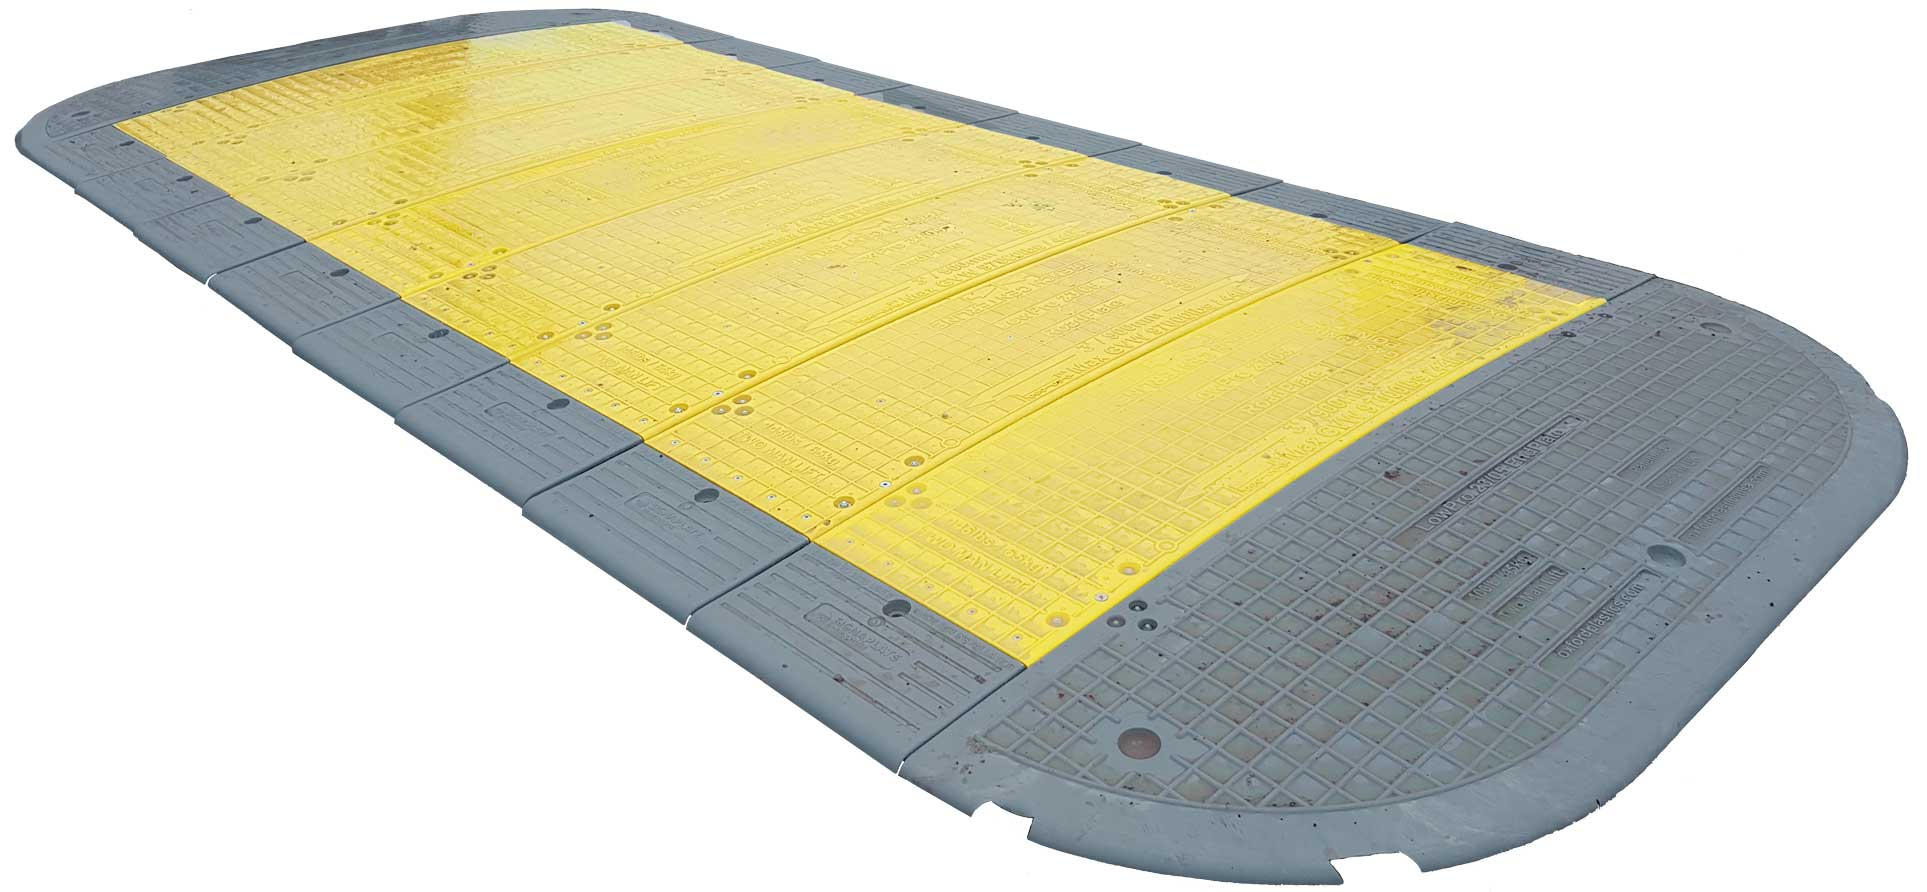 LowPro 23/05 Composite Road Plate